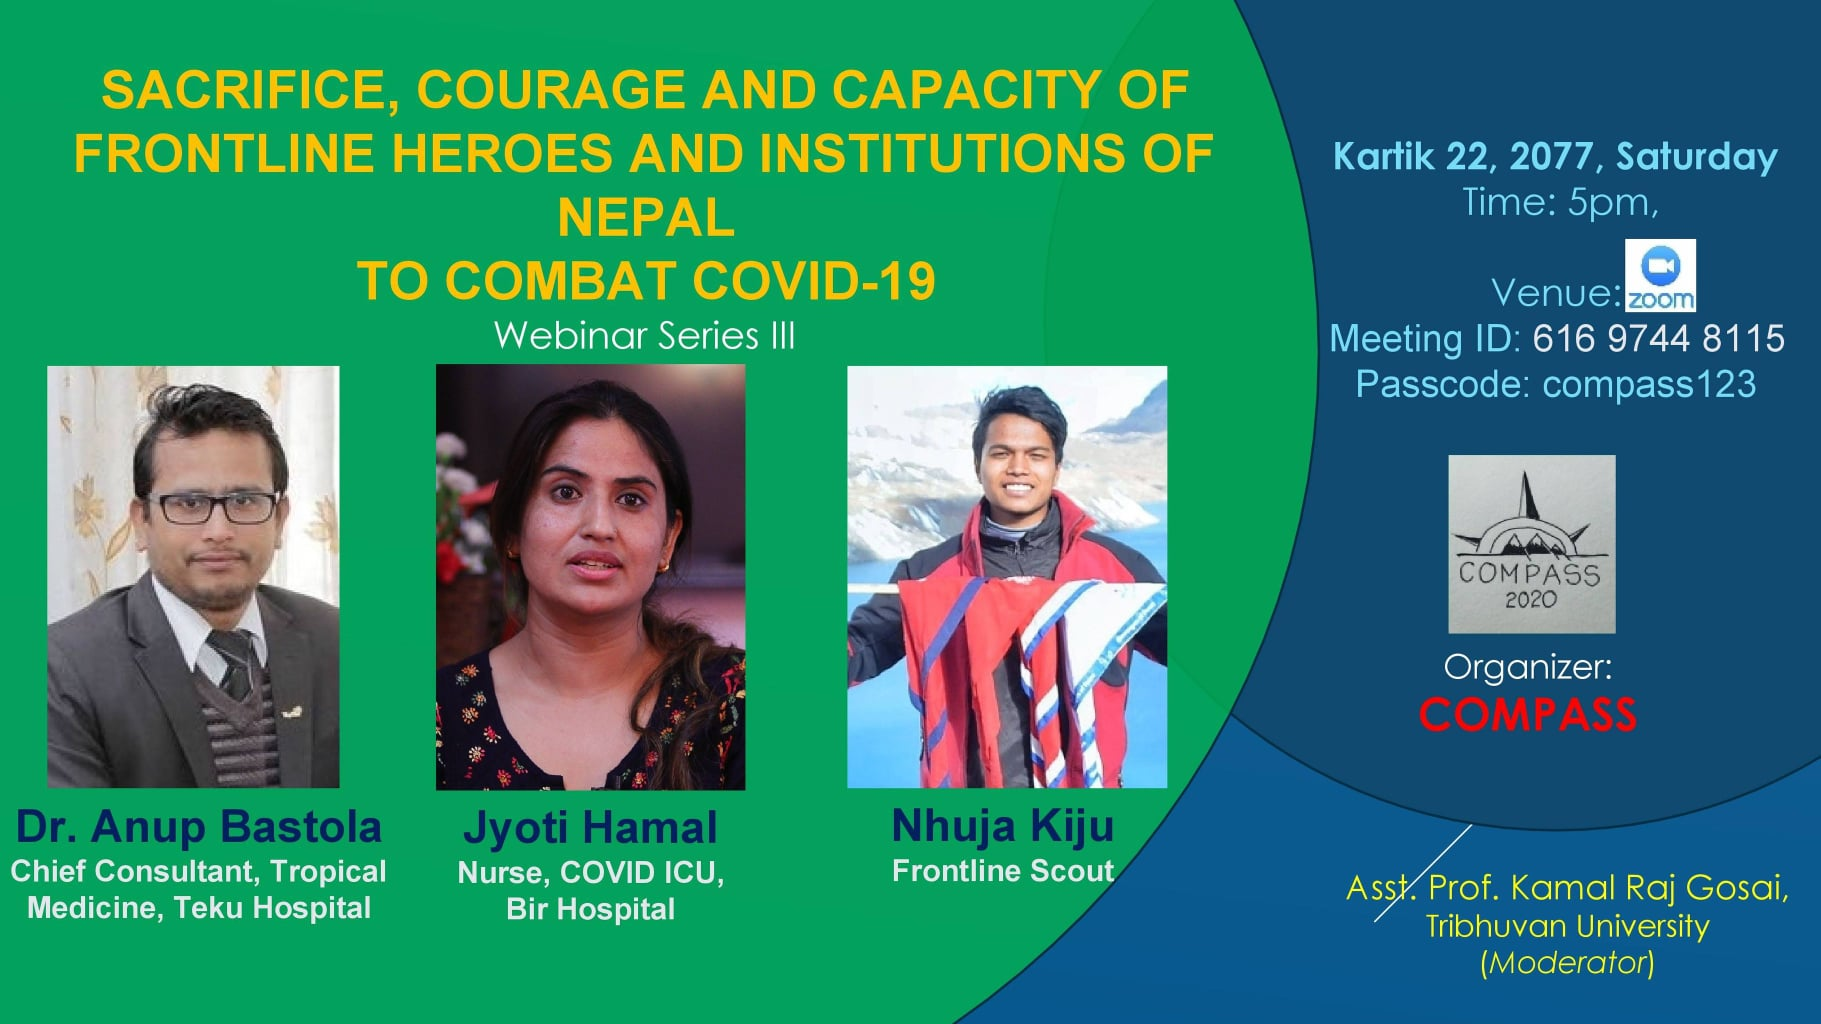 Sacrifice, Courage and Capacity of Frontline heroes and Institutions of Nepal to combat Covid-19 image